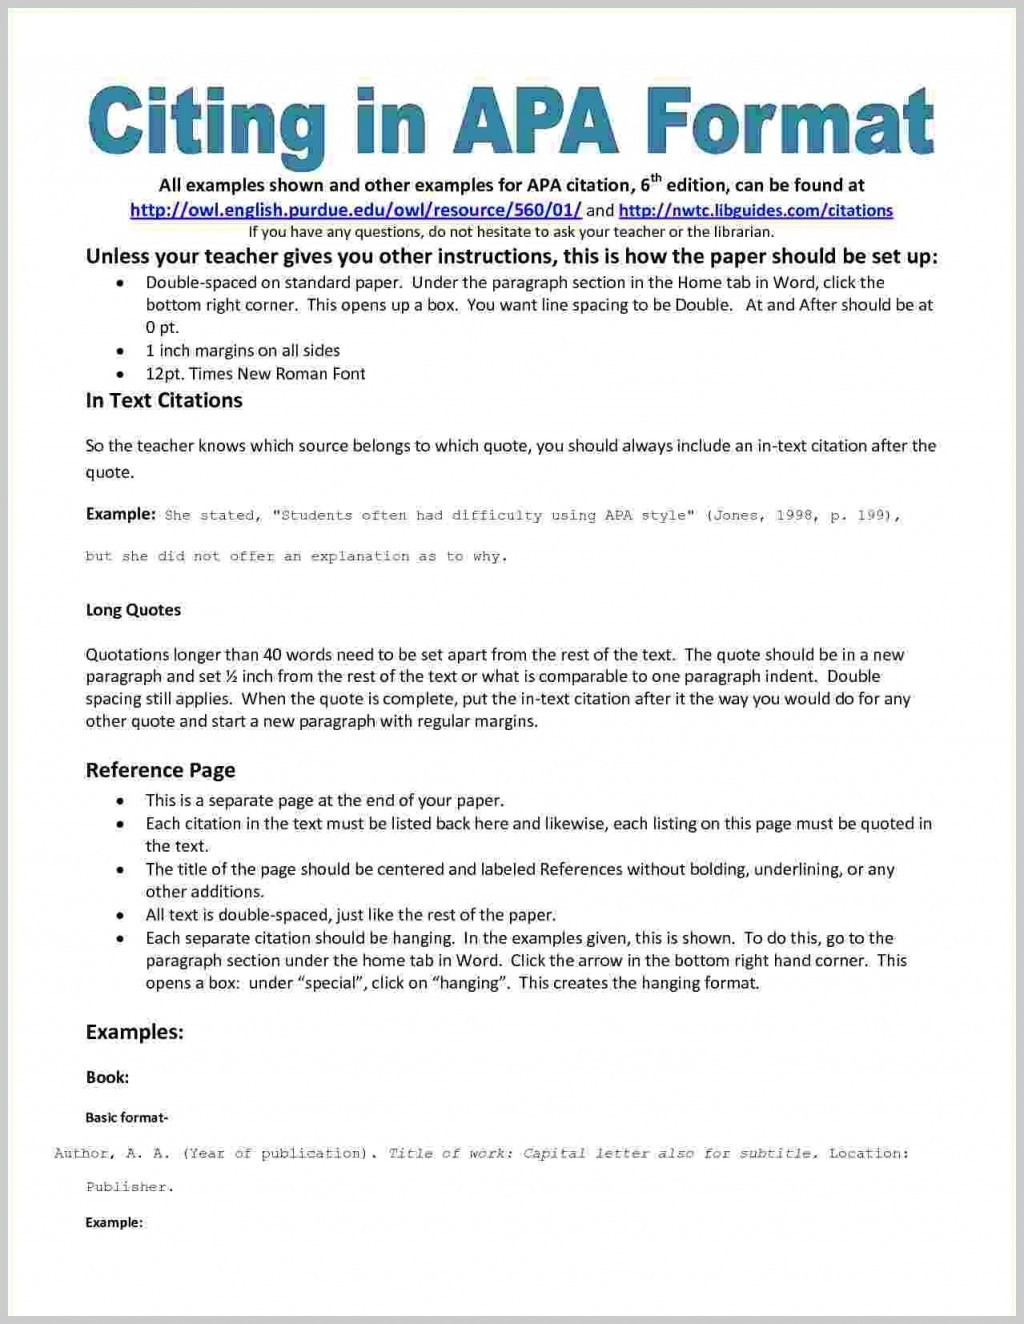 002 Research Paper Database Security Apa Style Reference In Text Citation Mla Examples Toreto Co Striking Ieee Pdf - Draft Large